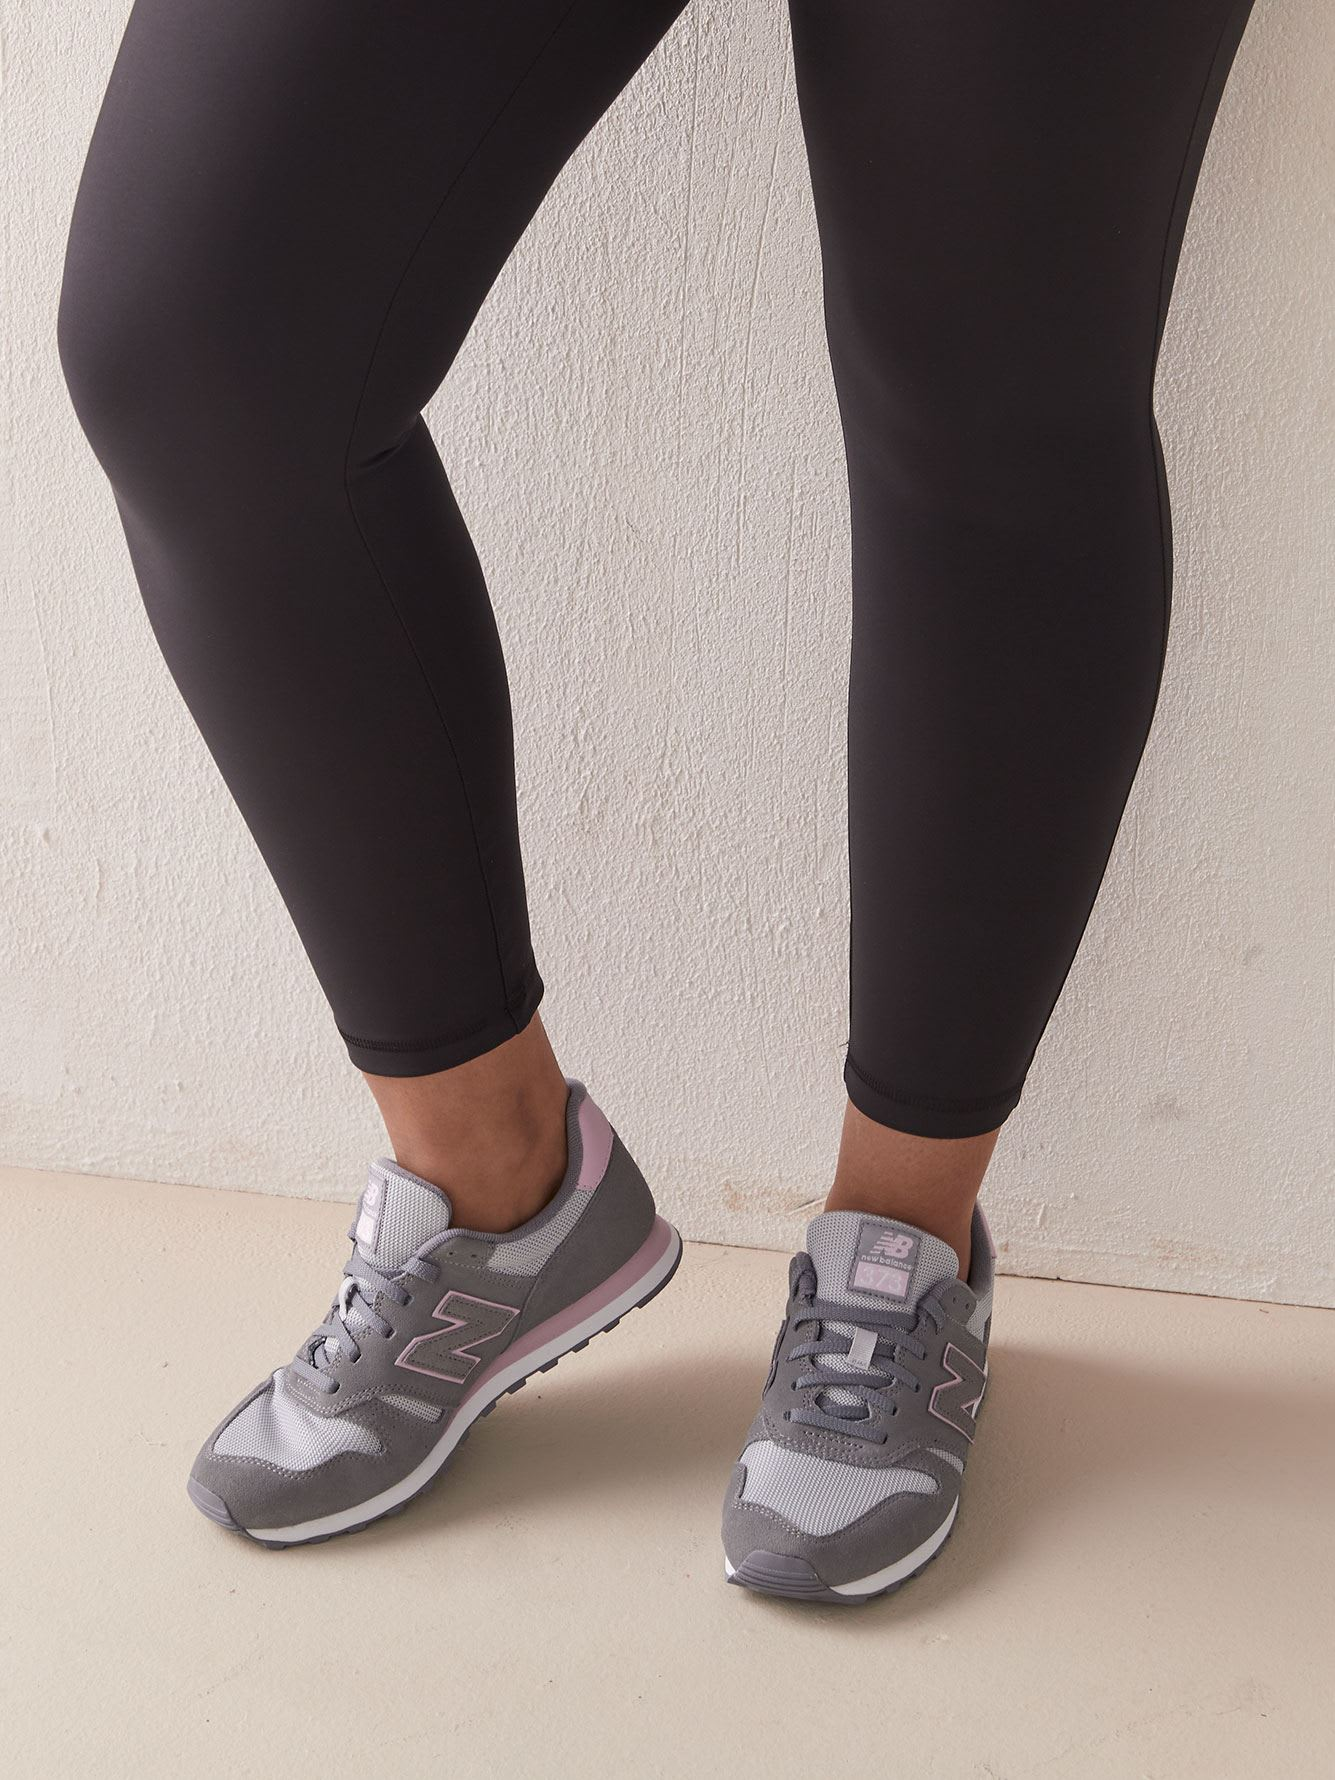 Wide Width Lifestyle Sneakers - New Balance